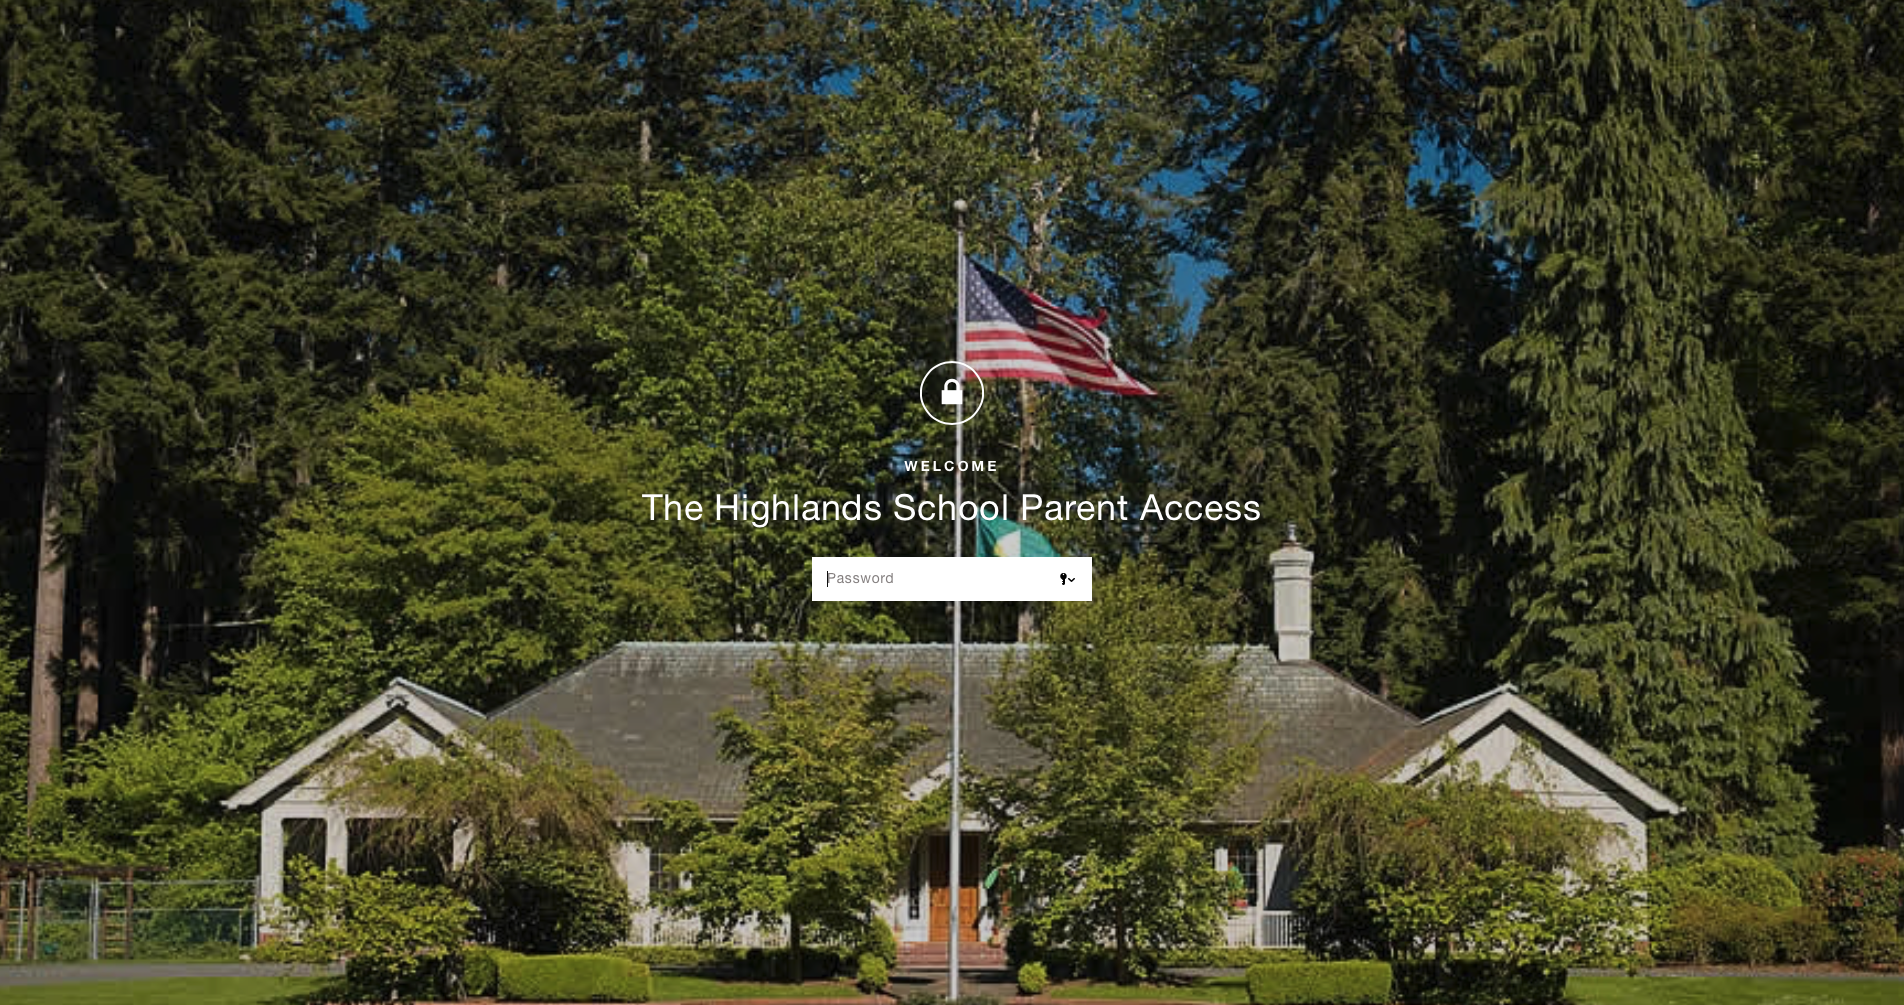 The Highlands School Parent Access - Password protected